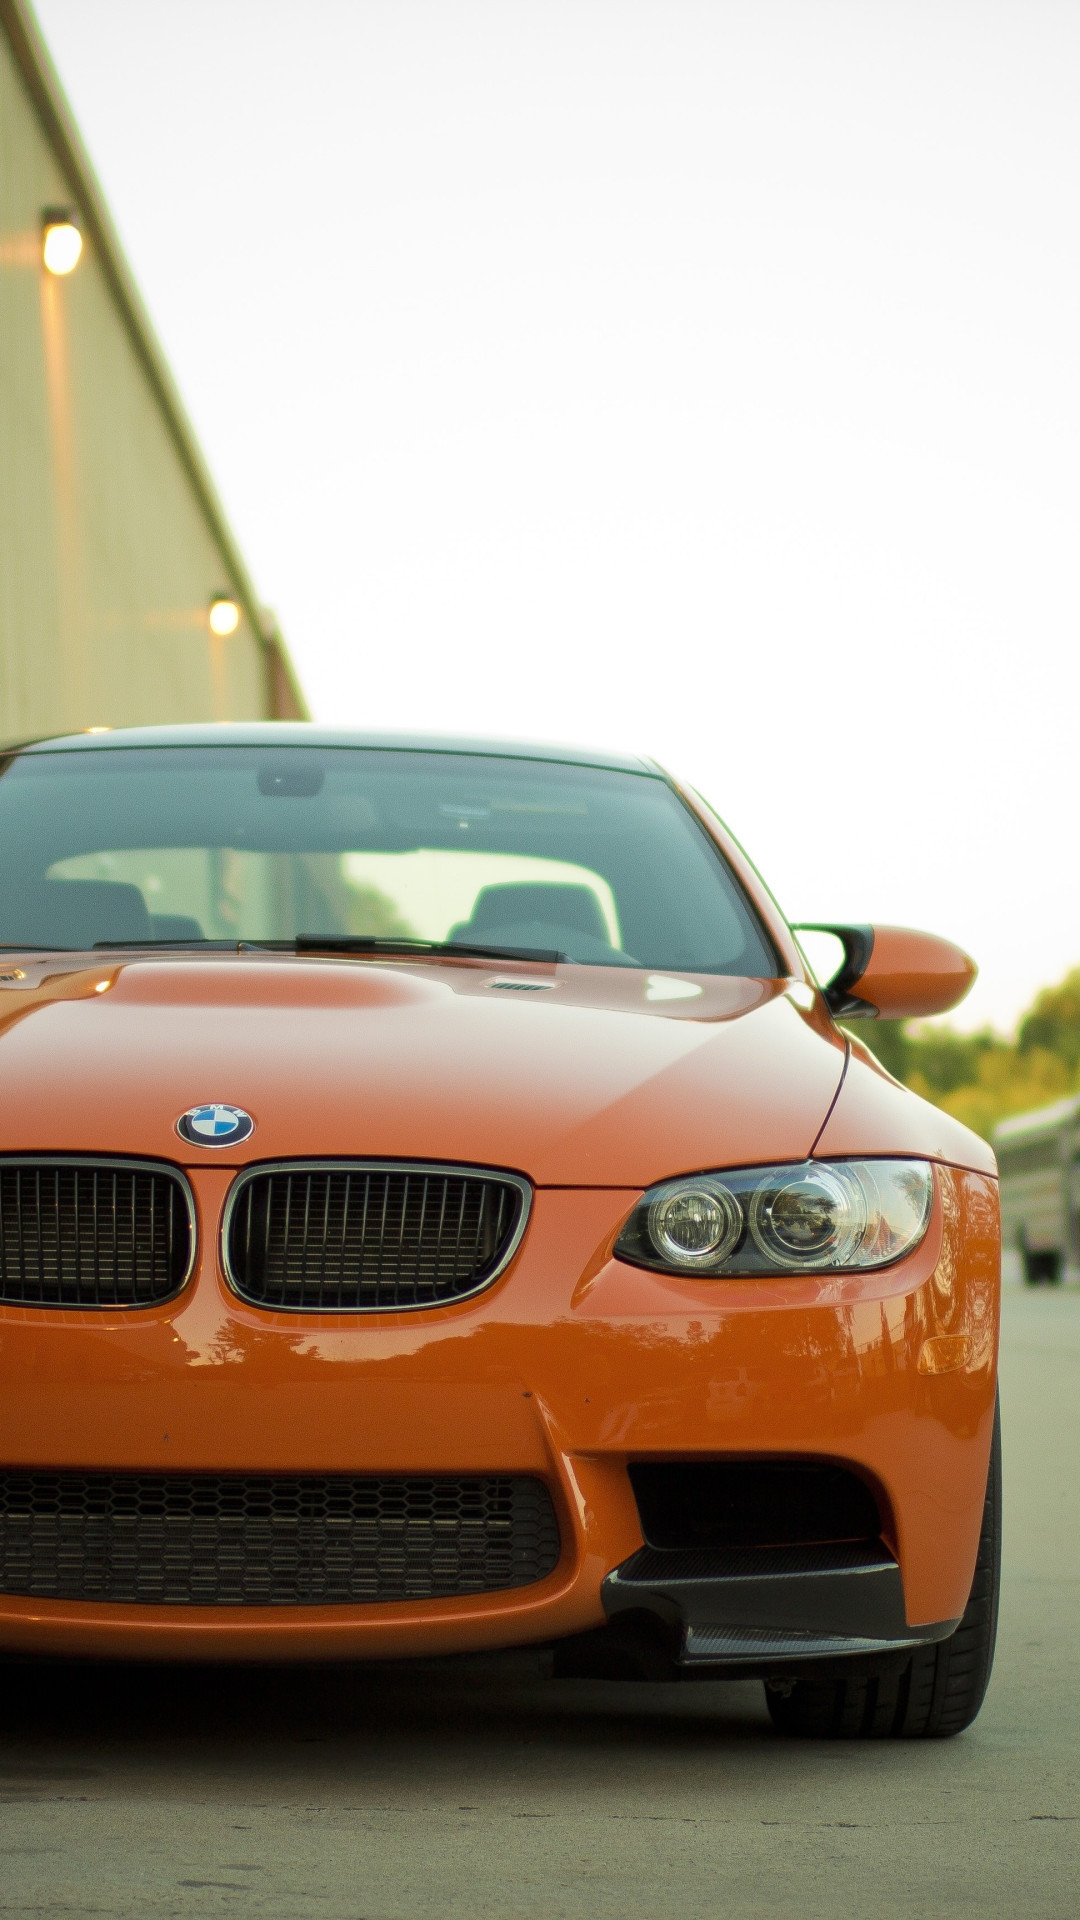 Bmw M3 Iphone Wallpaper 71 Images